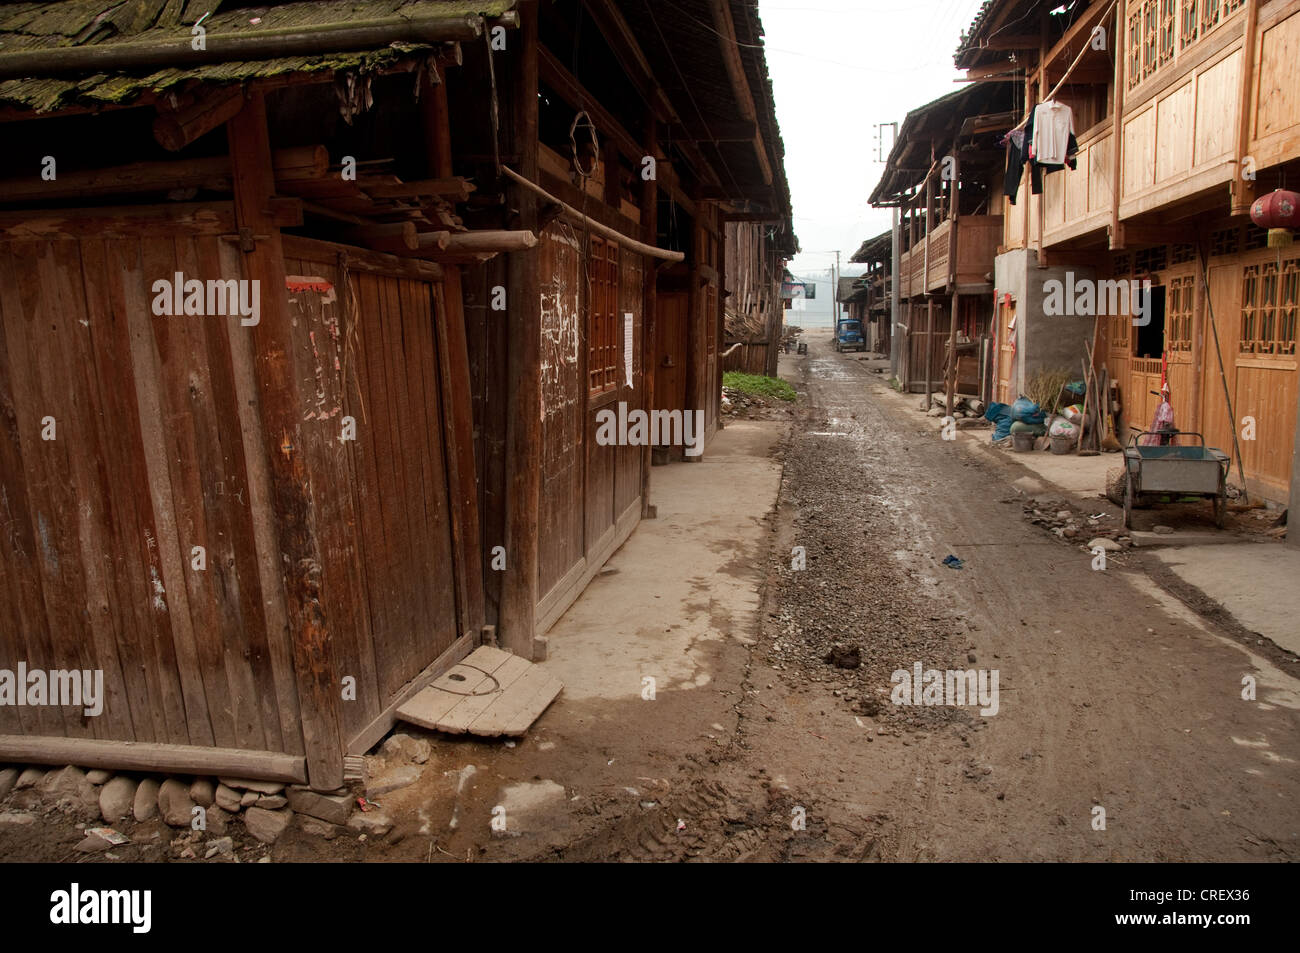 Unpaved street and traditional wooden houses of Chejiang Dong village, Southern China - Stock Image